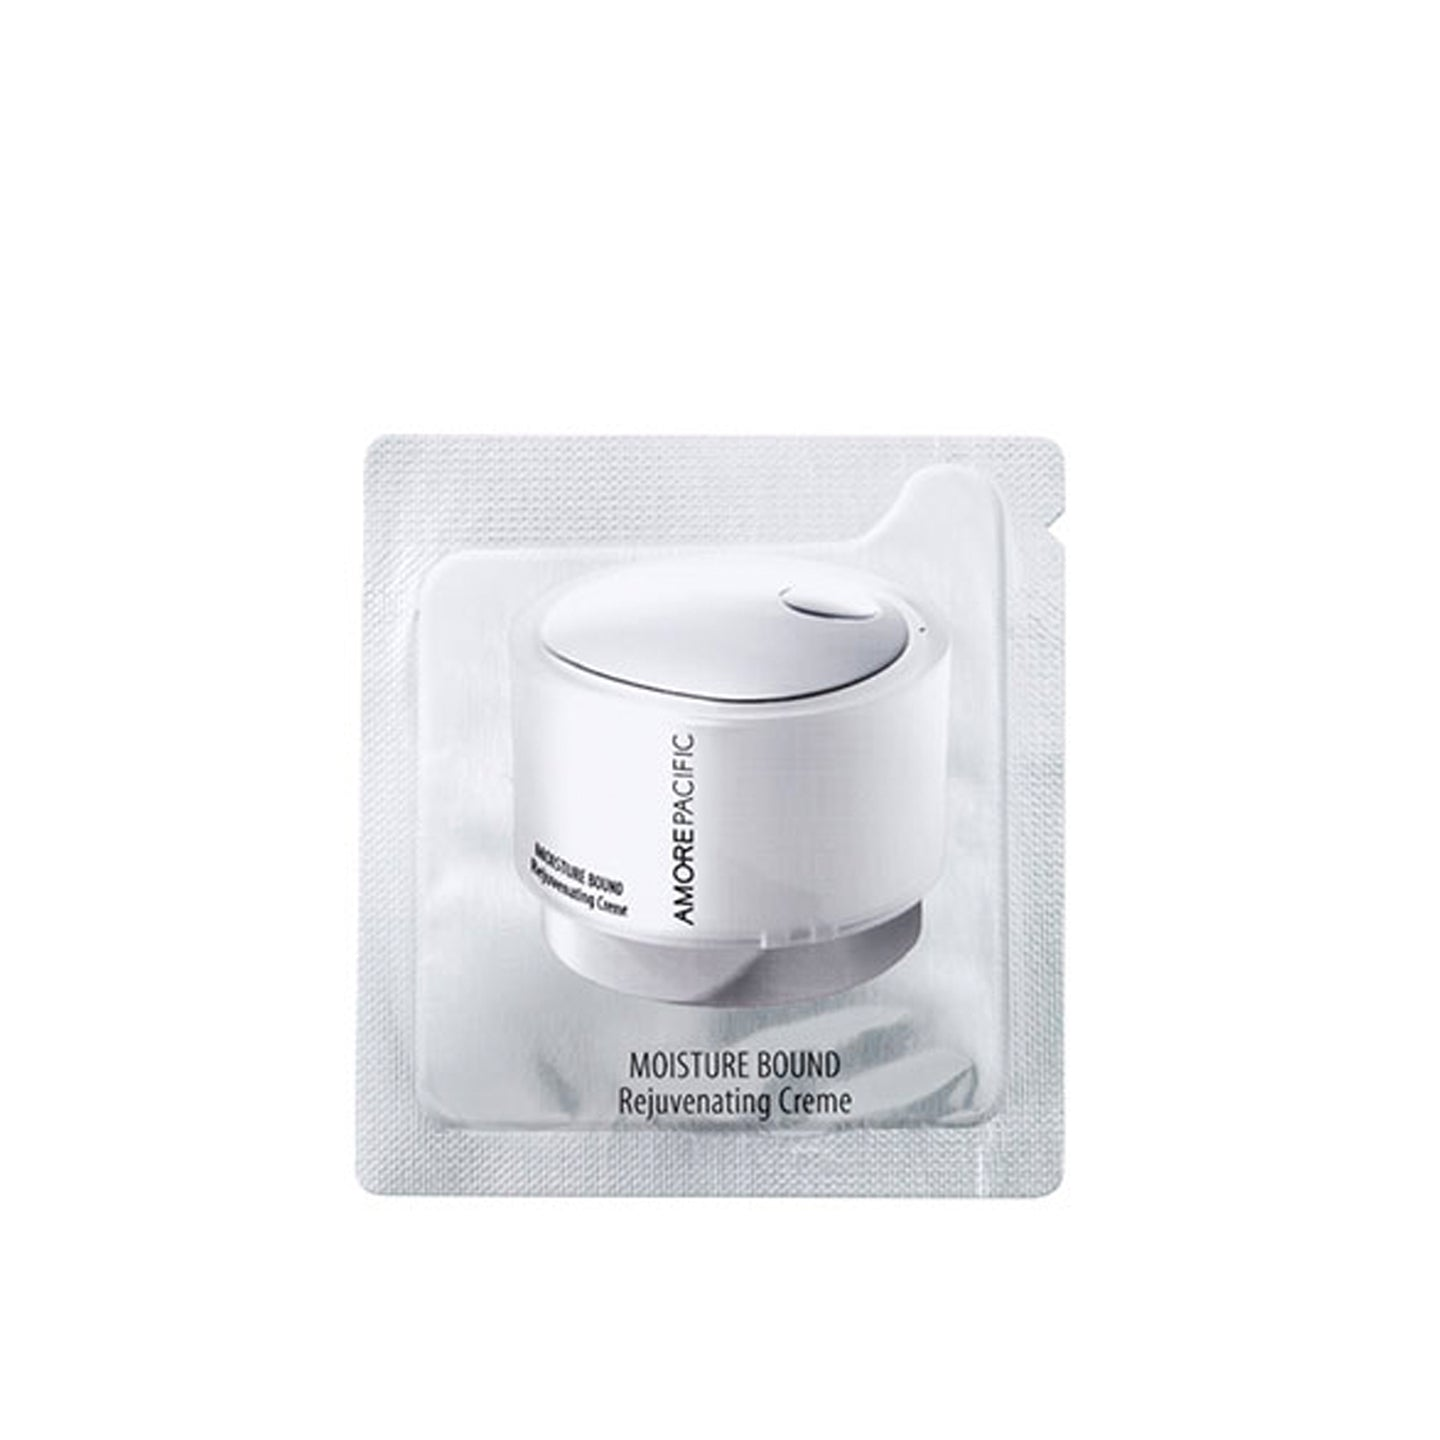 MOISTURE BOUND Rejuvenating Creme (1ml)